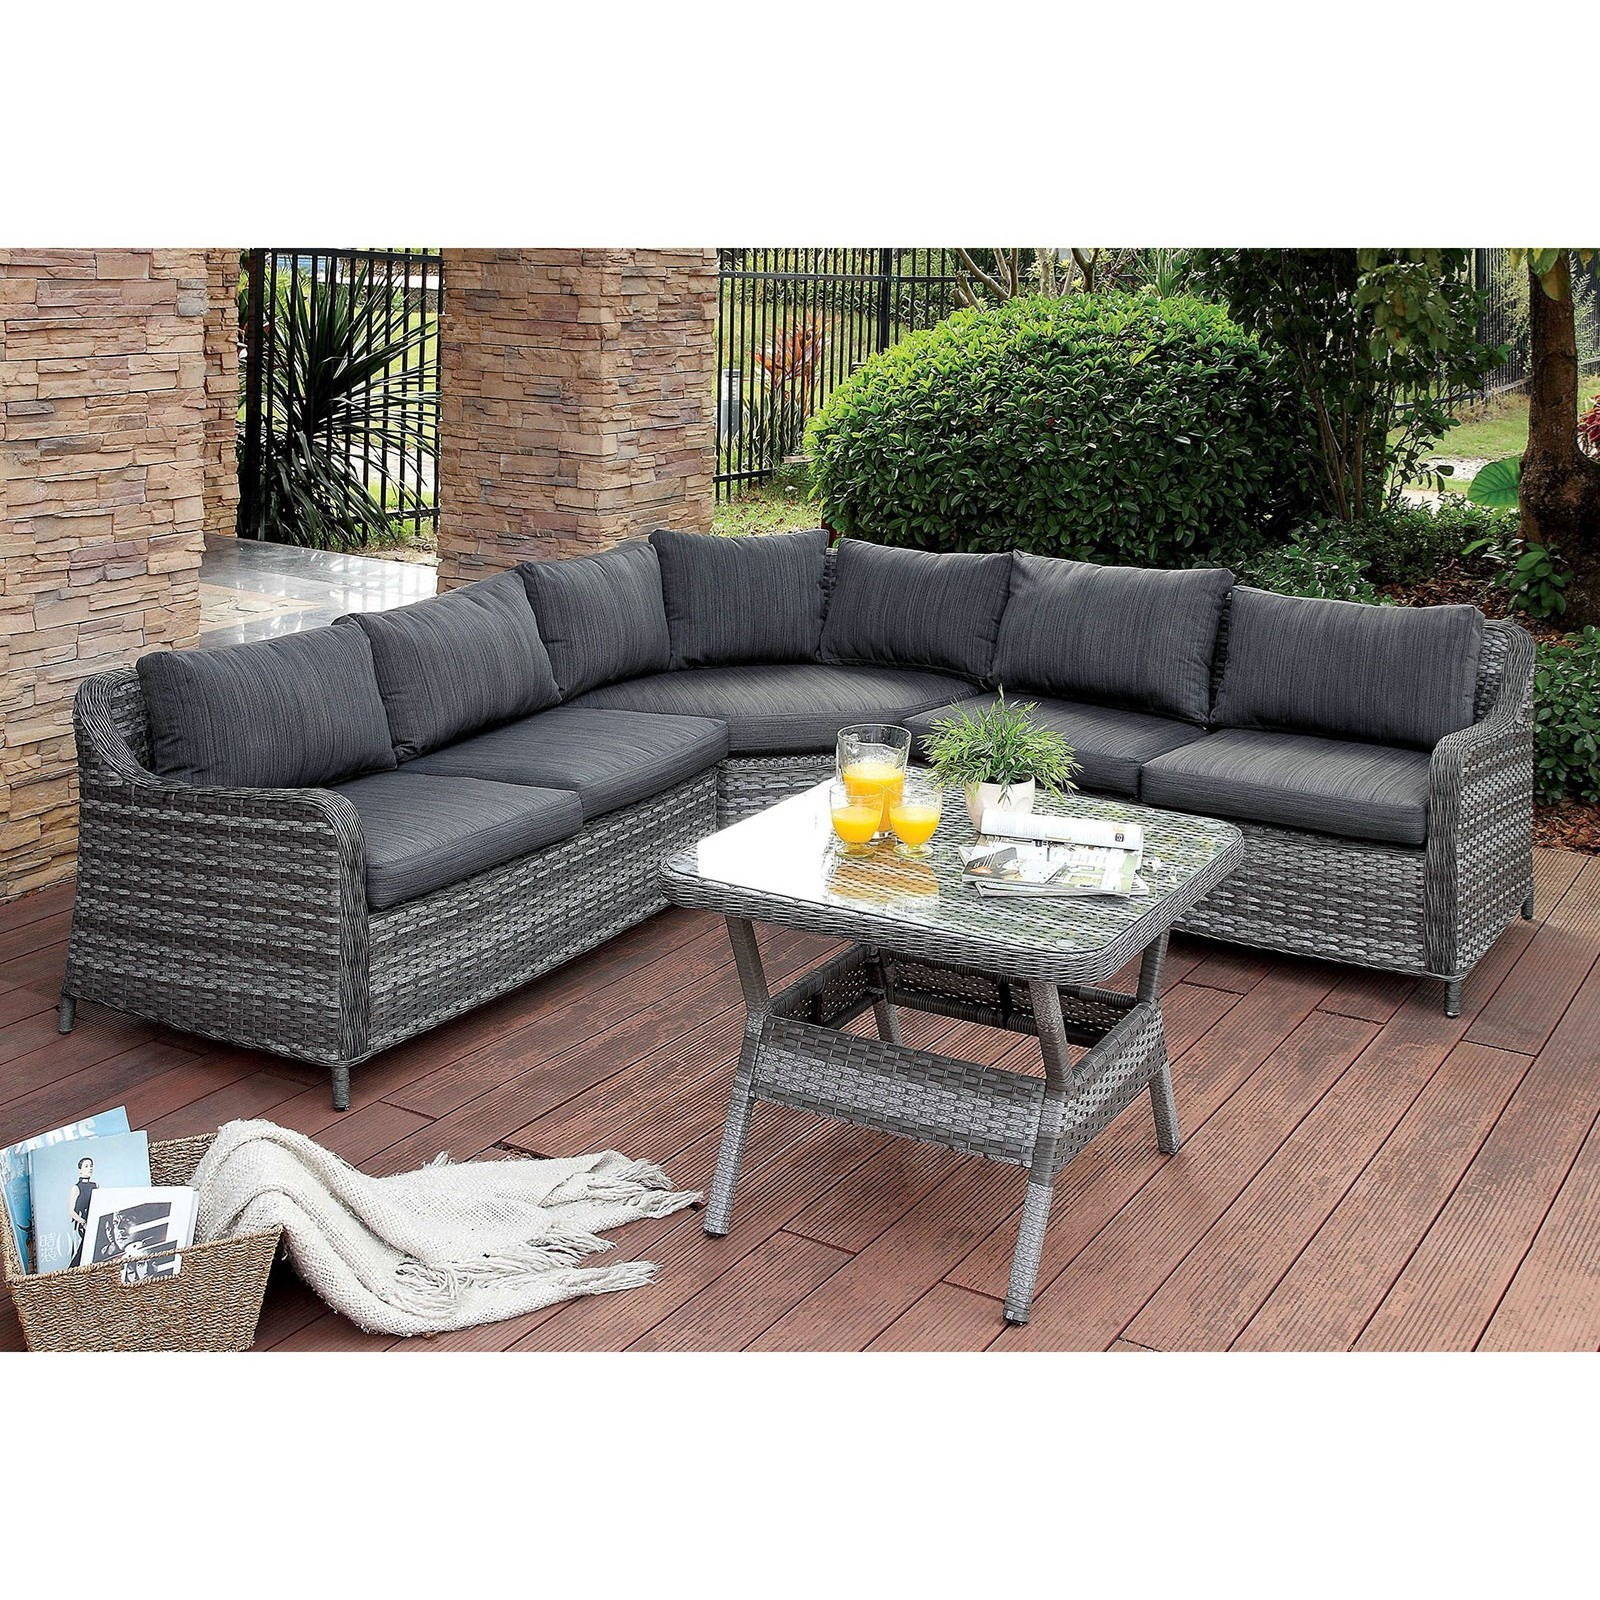 Selina Patio Sectional w/ Table by Furniture of America at Corner Furniture